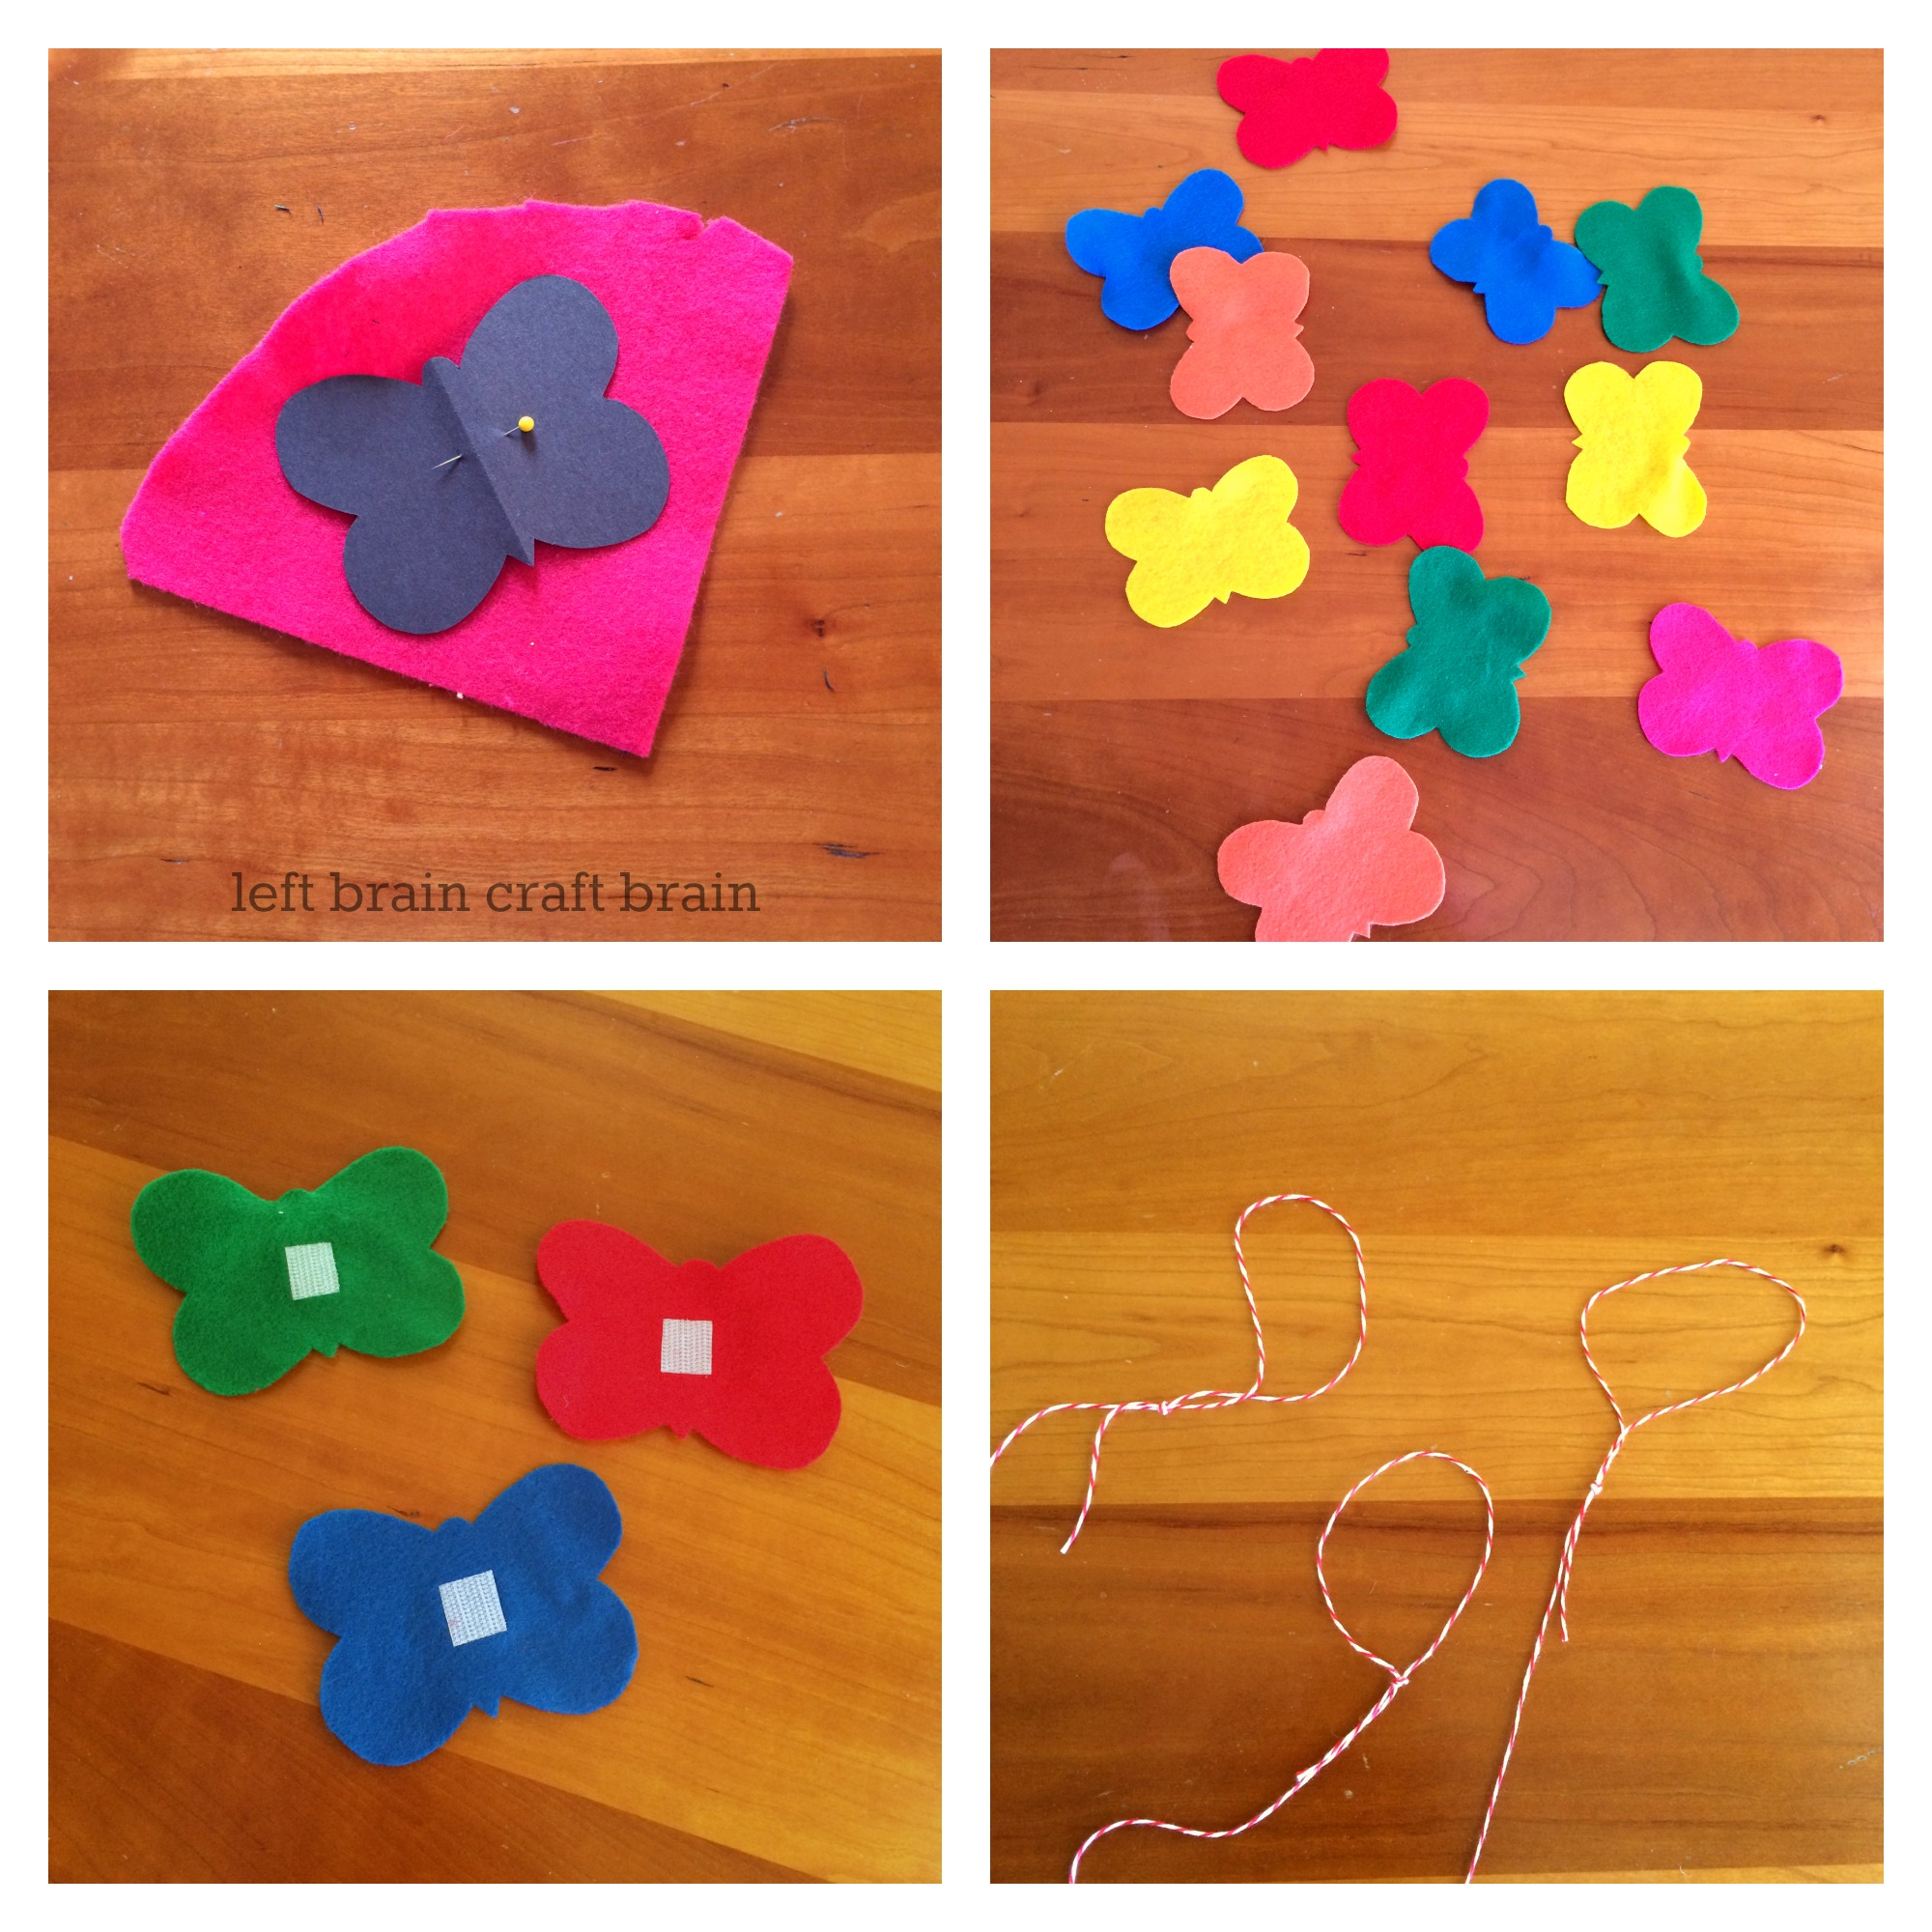 butterfly game activity steps left brain craft brain